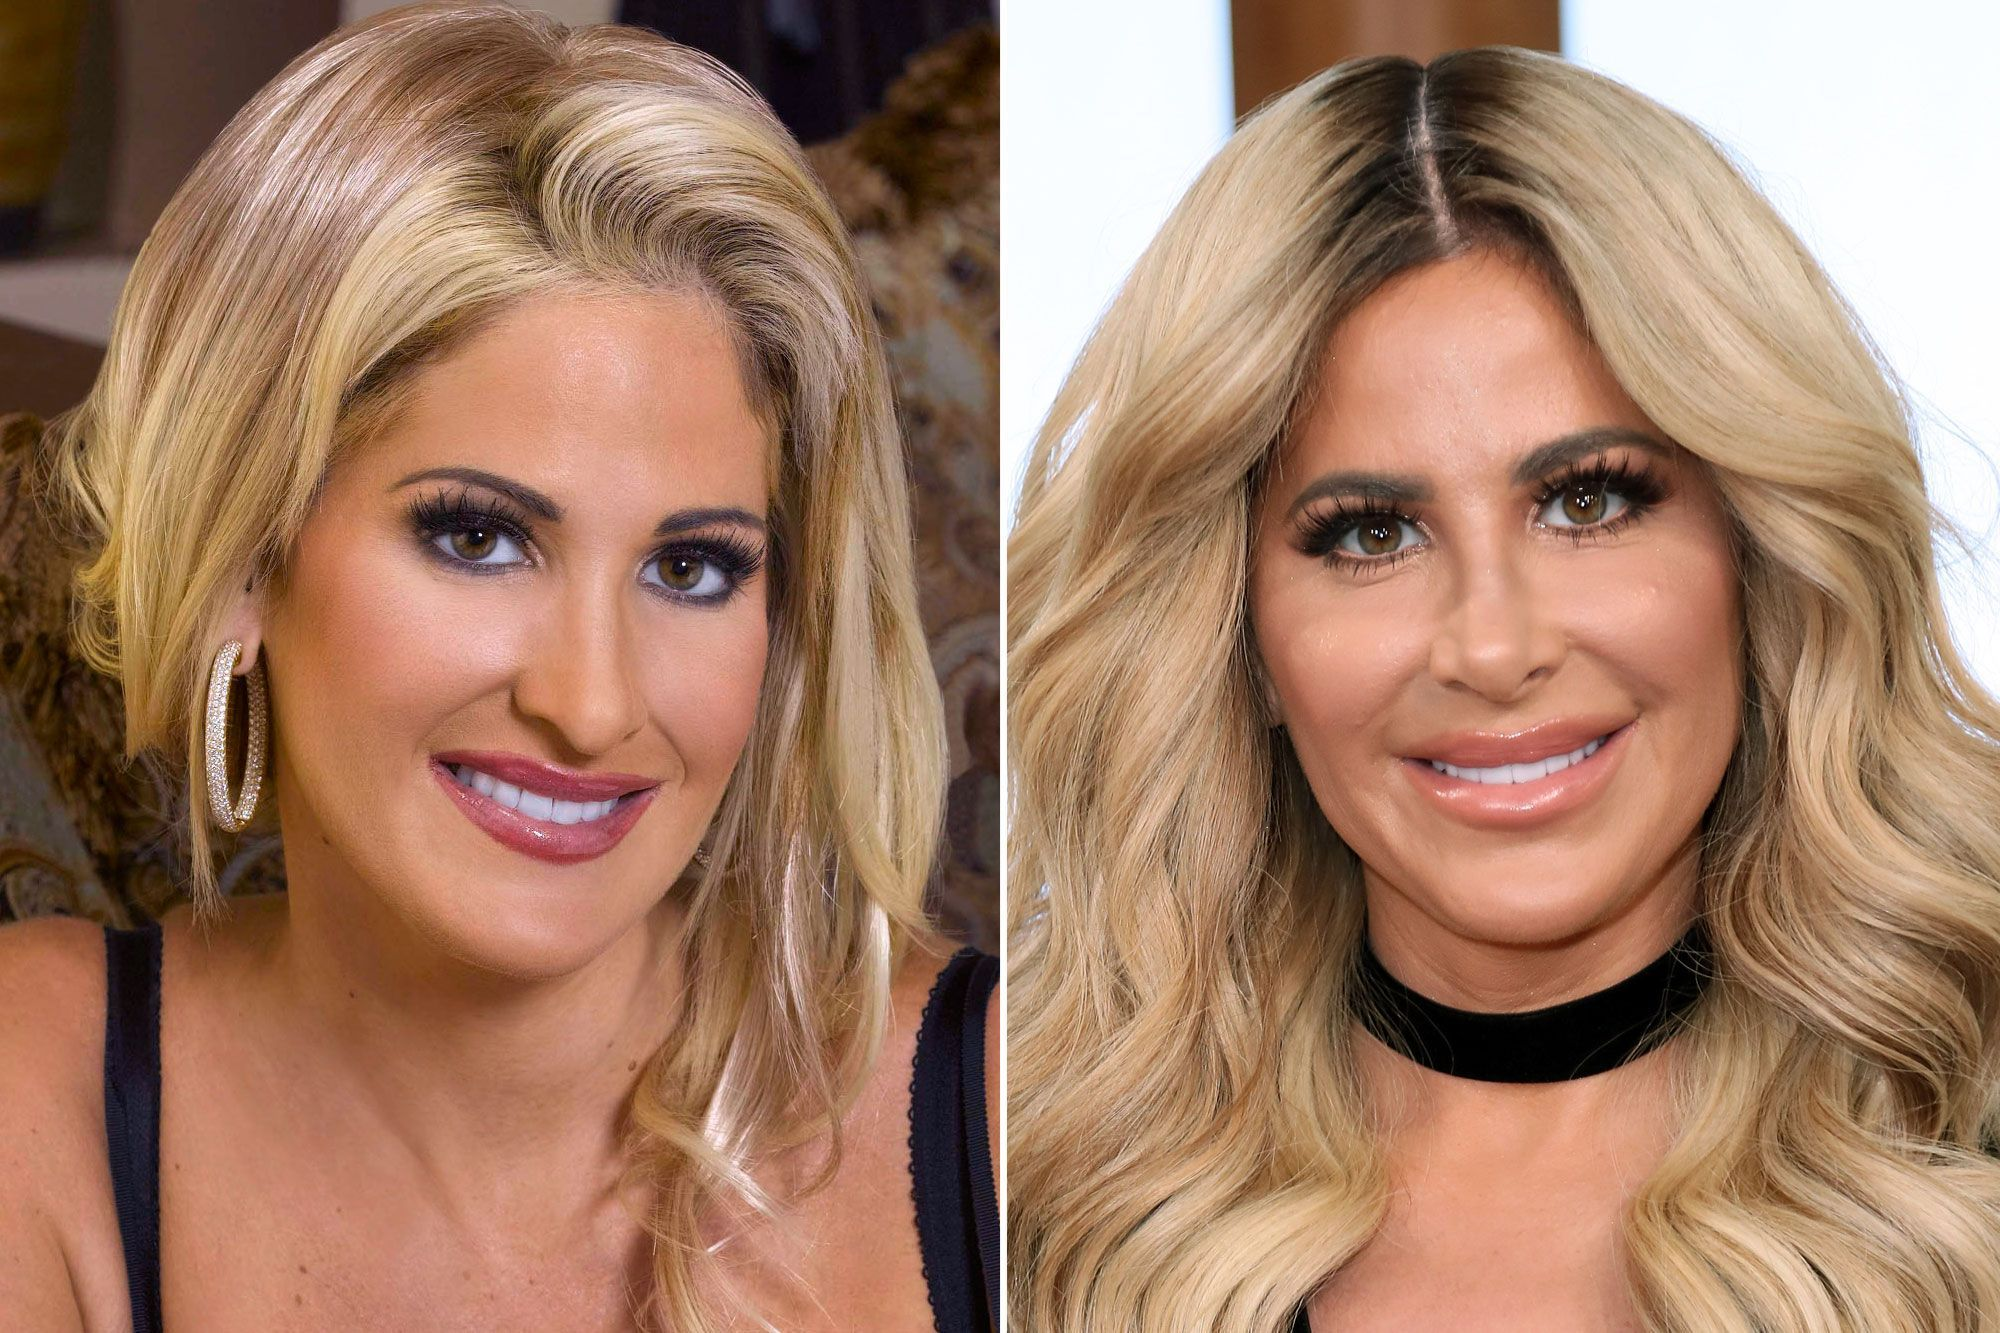 dc875e9a79c0 Kim Zolciak-Biermann hasn t been shy about her plastic surgery past. She s  documented her breast augmentation and tummy tuck surgery on her Bravo  reality ...